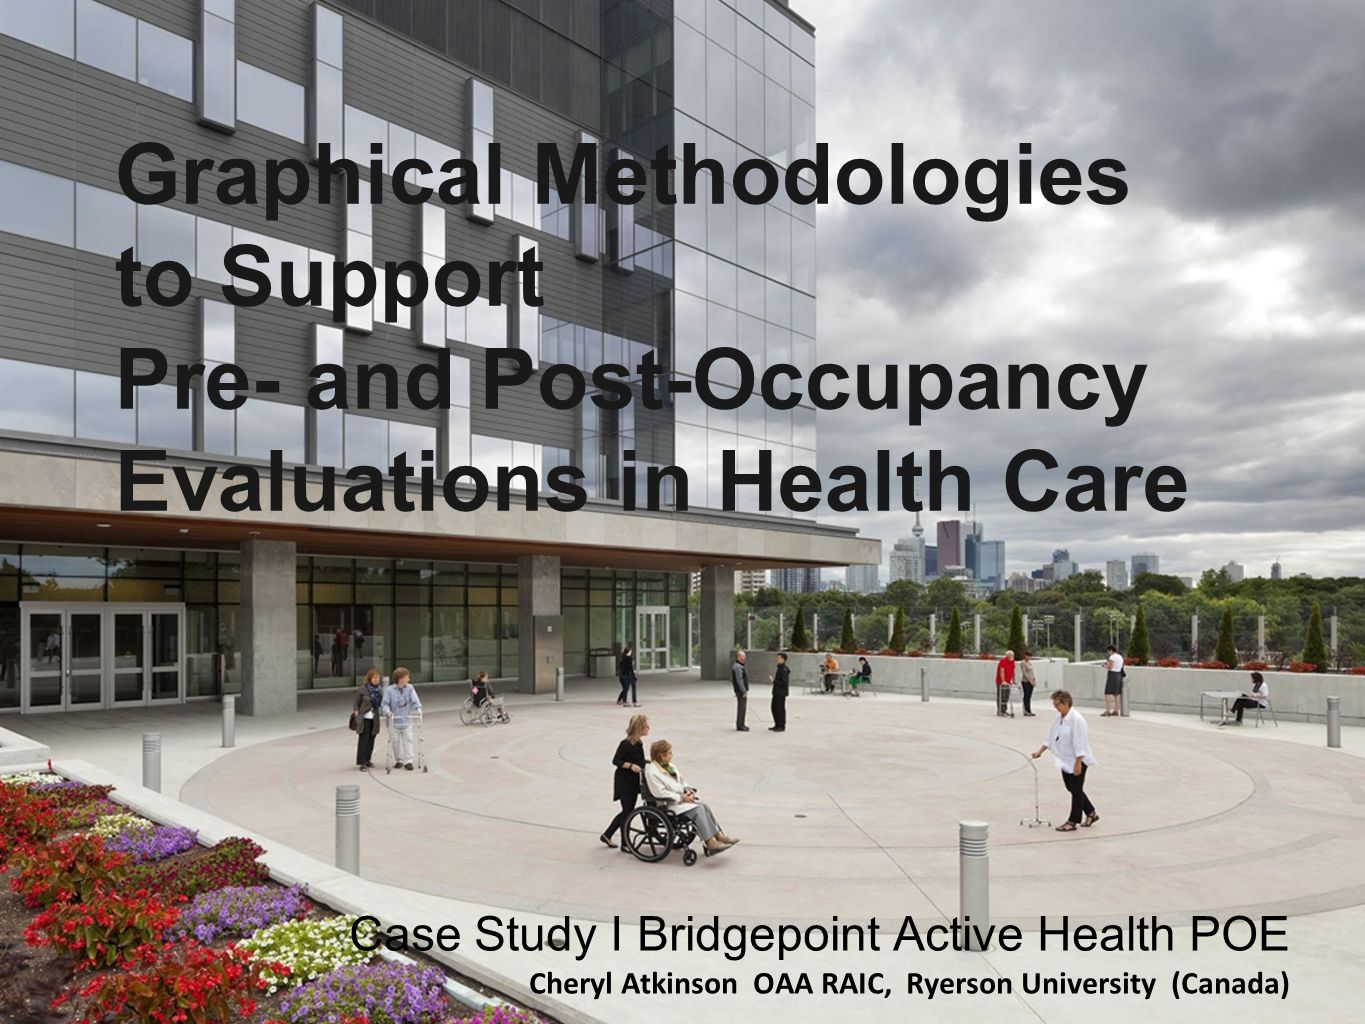 Graphical Methodologies to Support Pre- and Post-Occupancy Evaluations in Health Care Case Study I Bridgepoint Active Health POE Cheryl Atkinson OAA RAIC, Ryerson University (Canada)